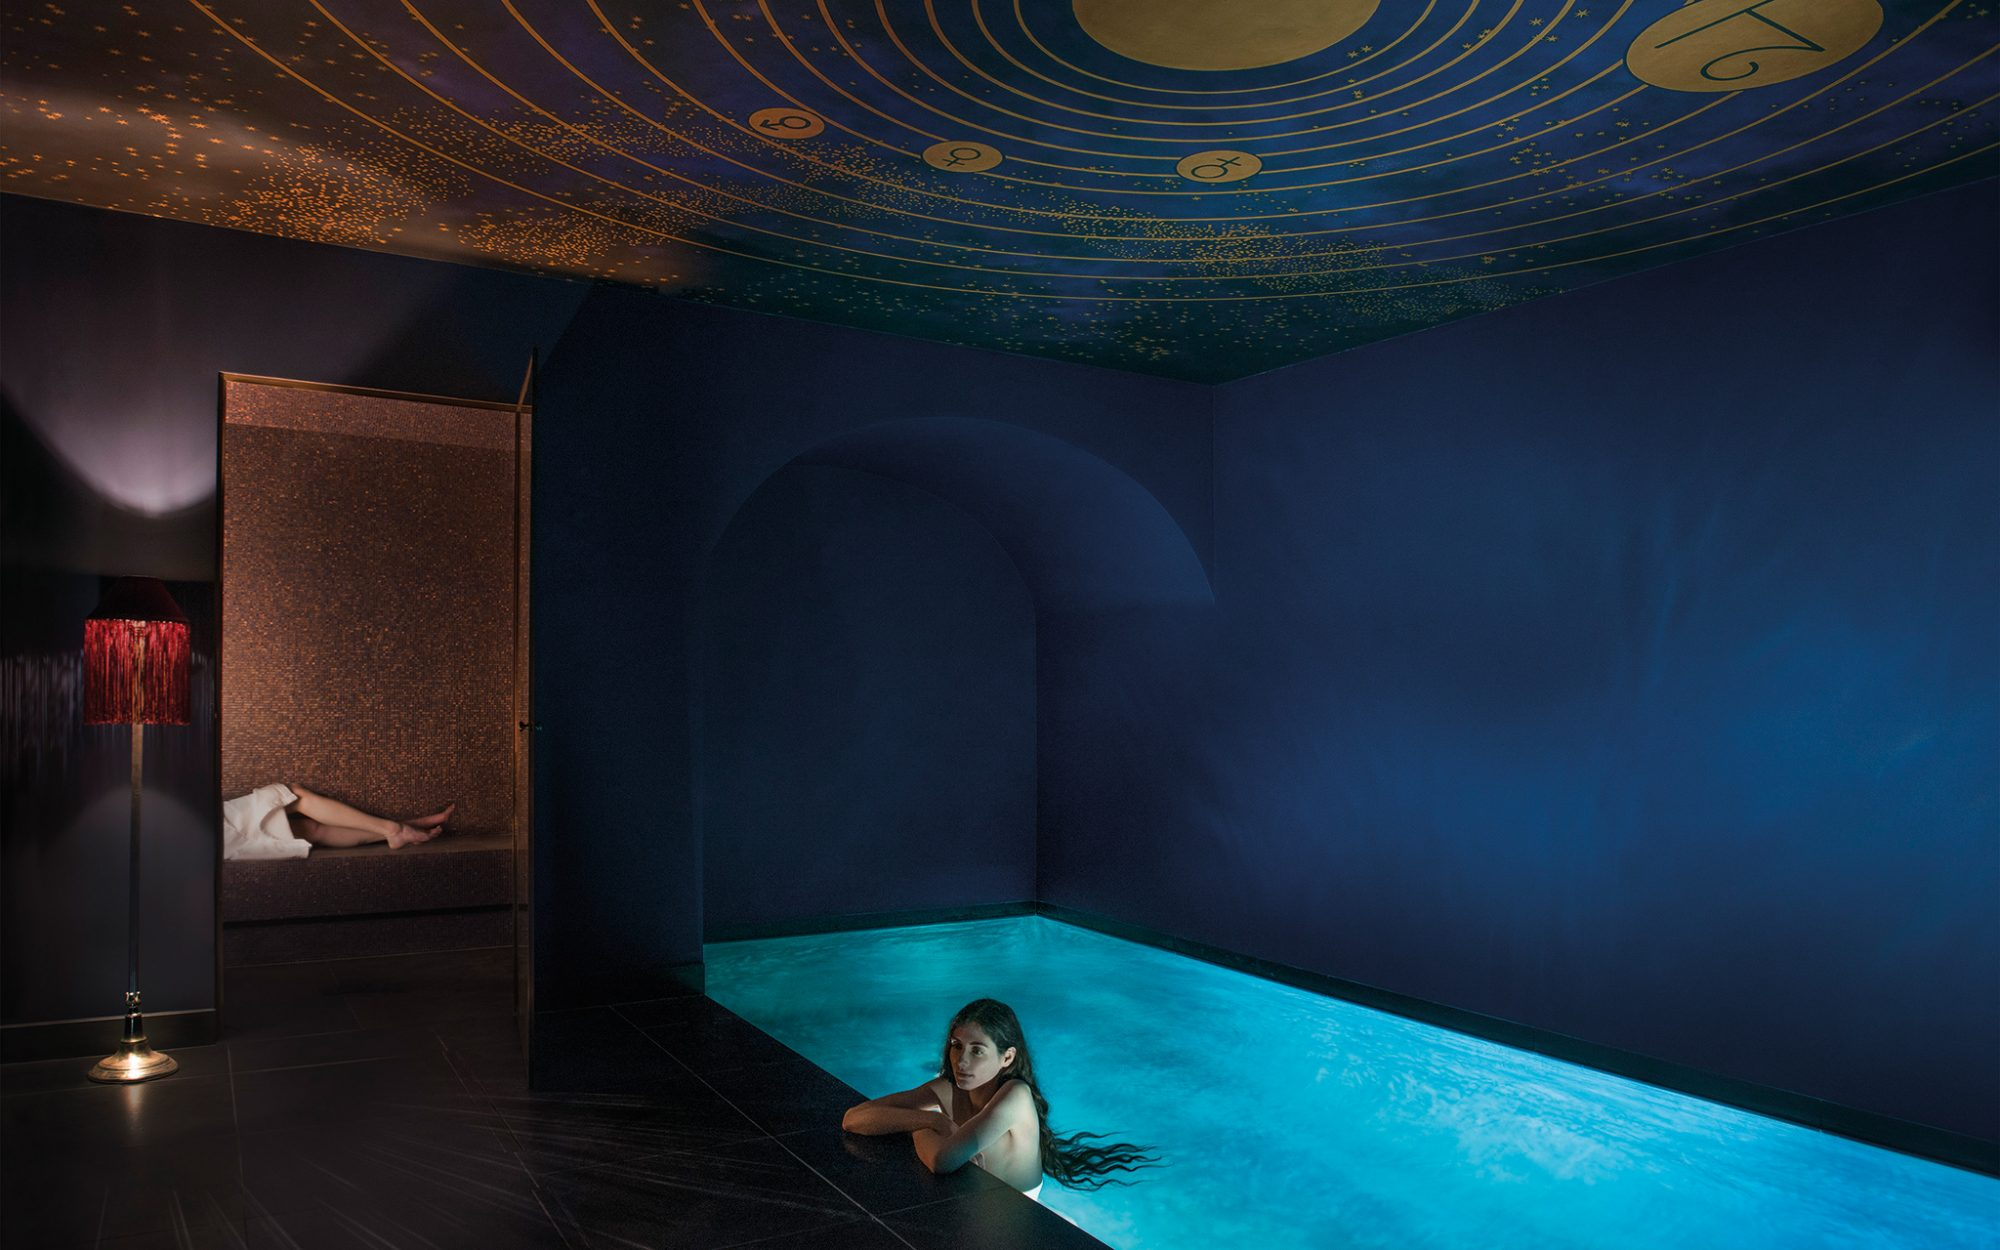 New to Paris: a Vampy Hotel With Design Steeped in Sex: Pool and Hammam